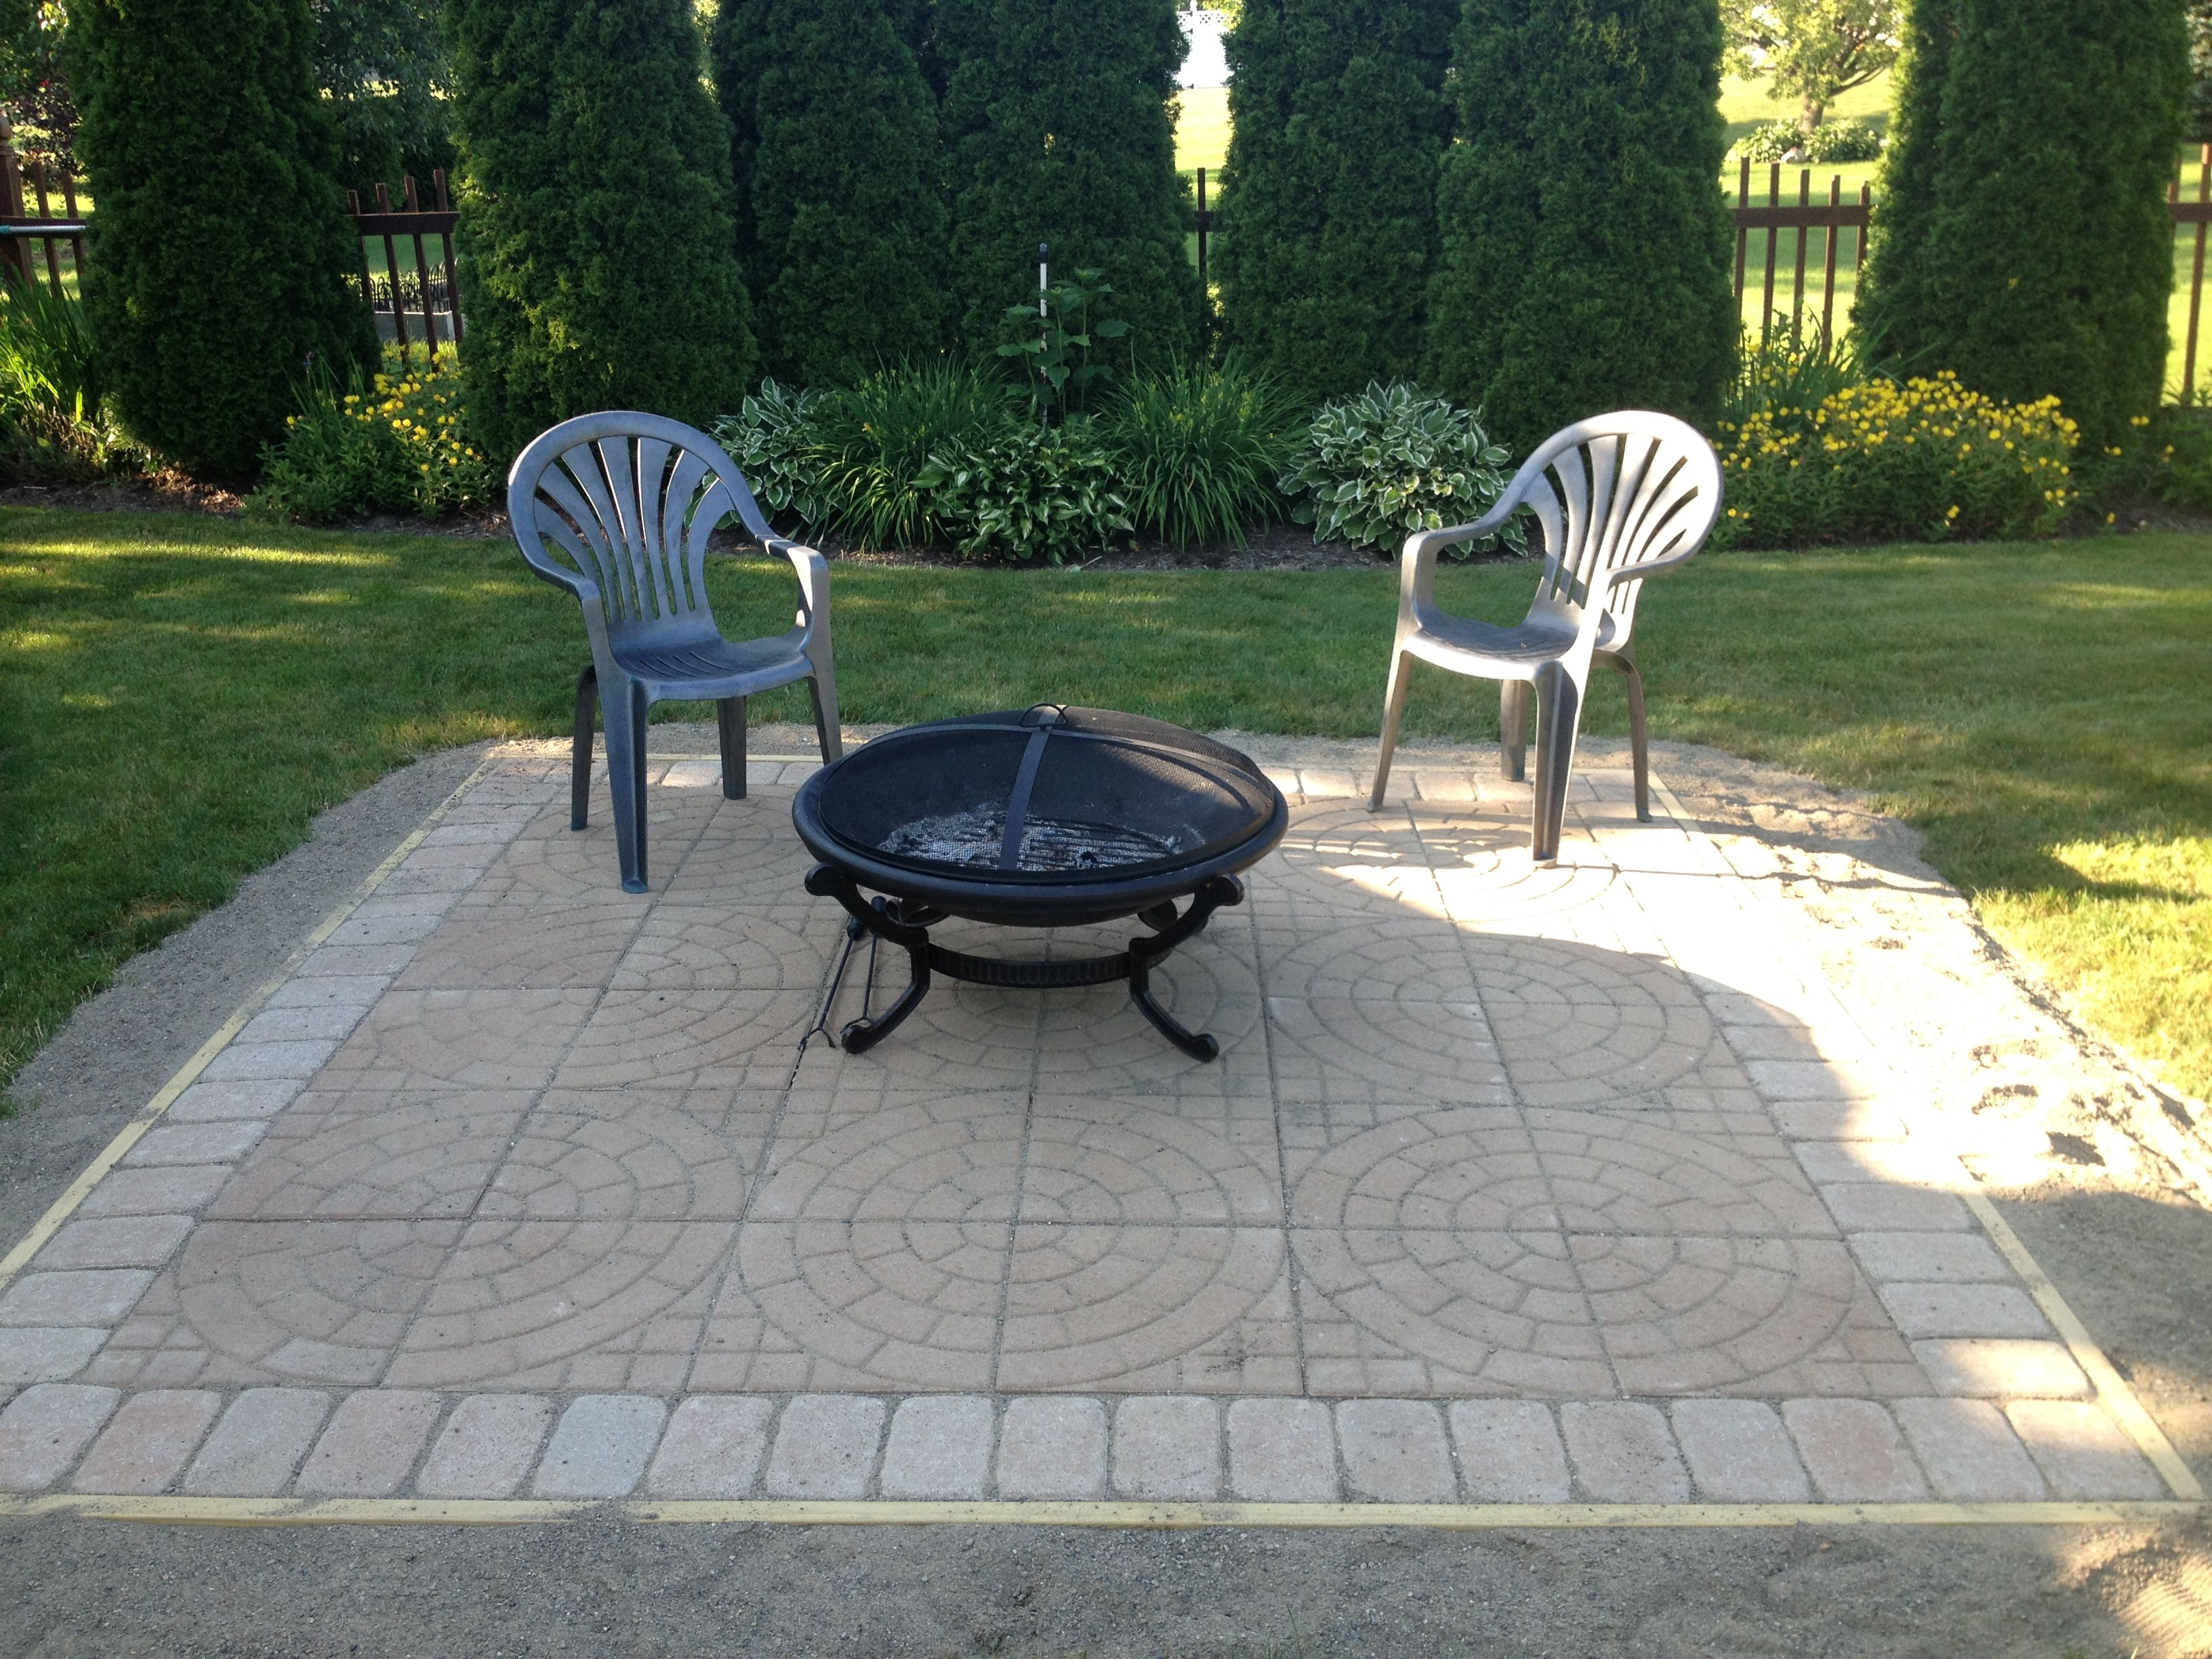 New Fire Pit Patioeasy With 16 X 16 Circle Pattern